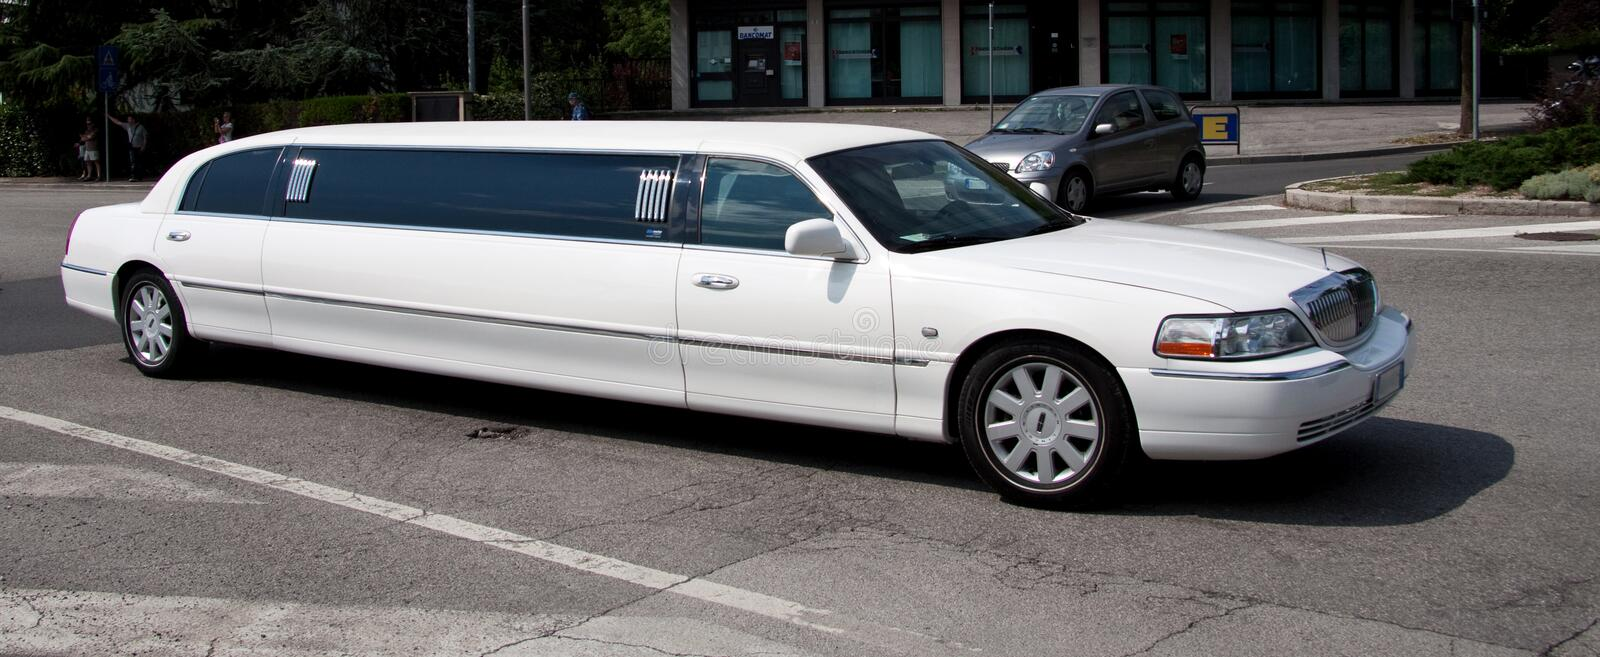 Limousine. Wedding limousine driving on the road stock photos